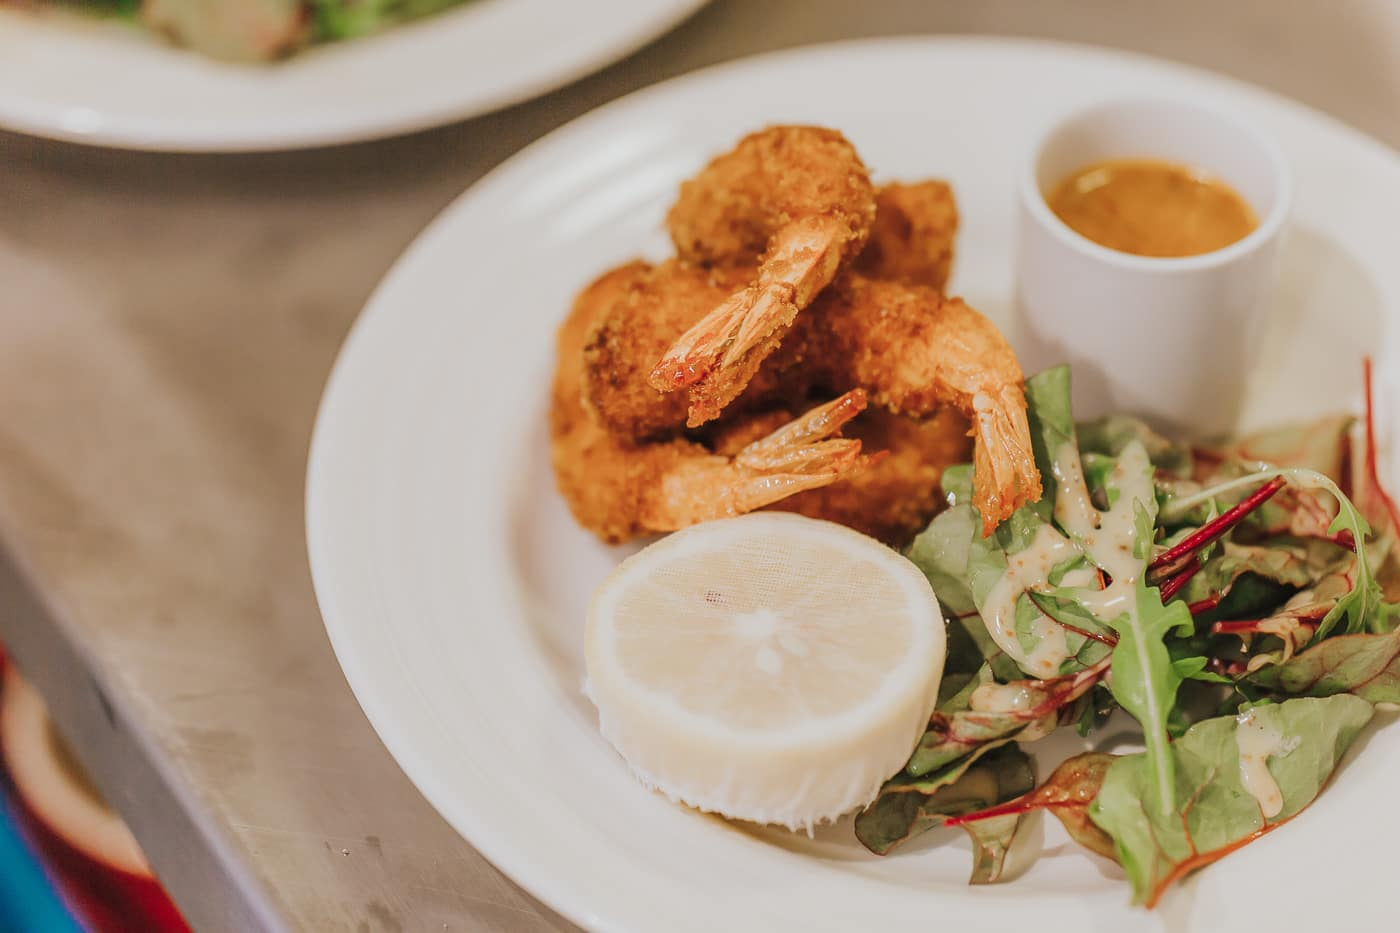 Top down shot of deep fried king prawns and salad